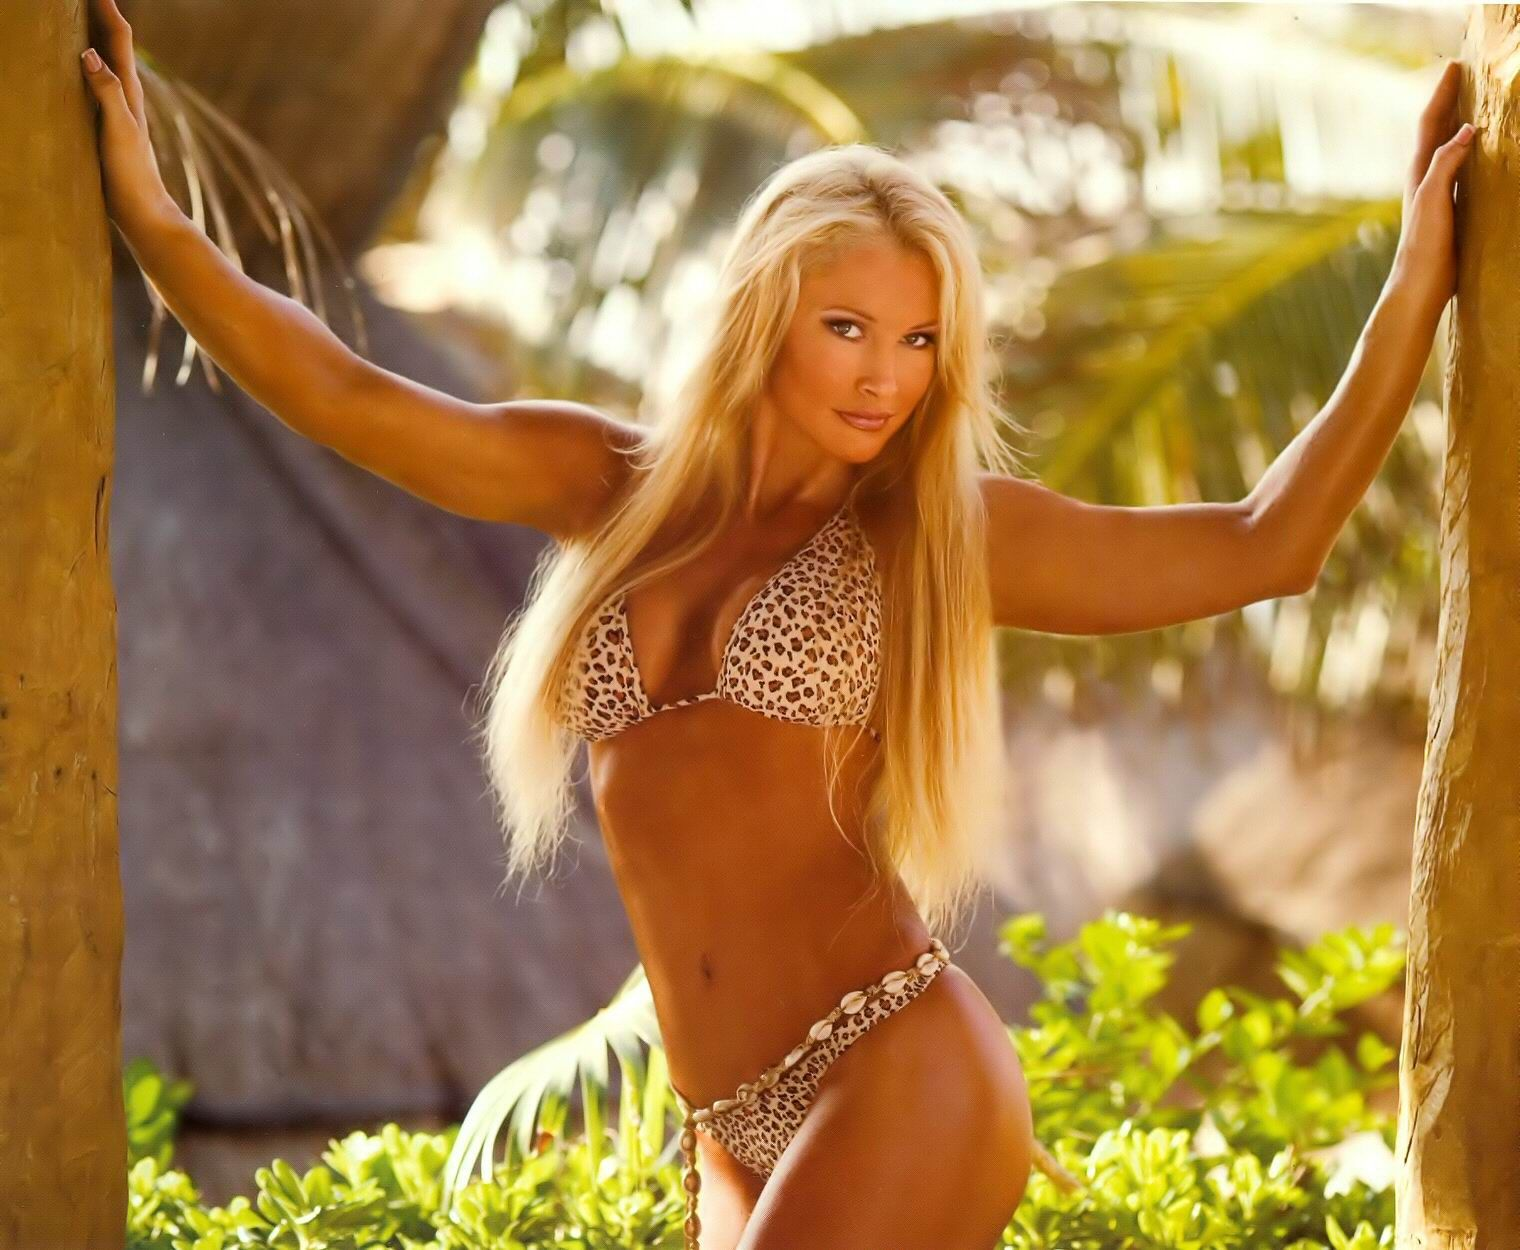 Sable hot bikini photos